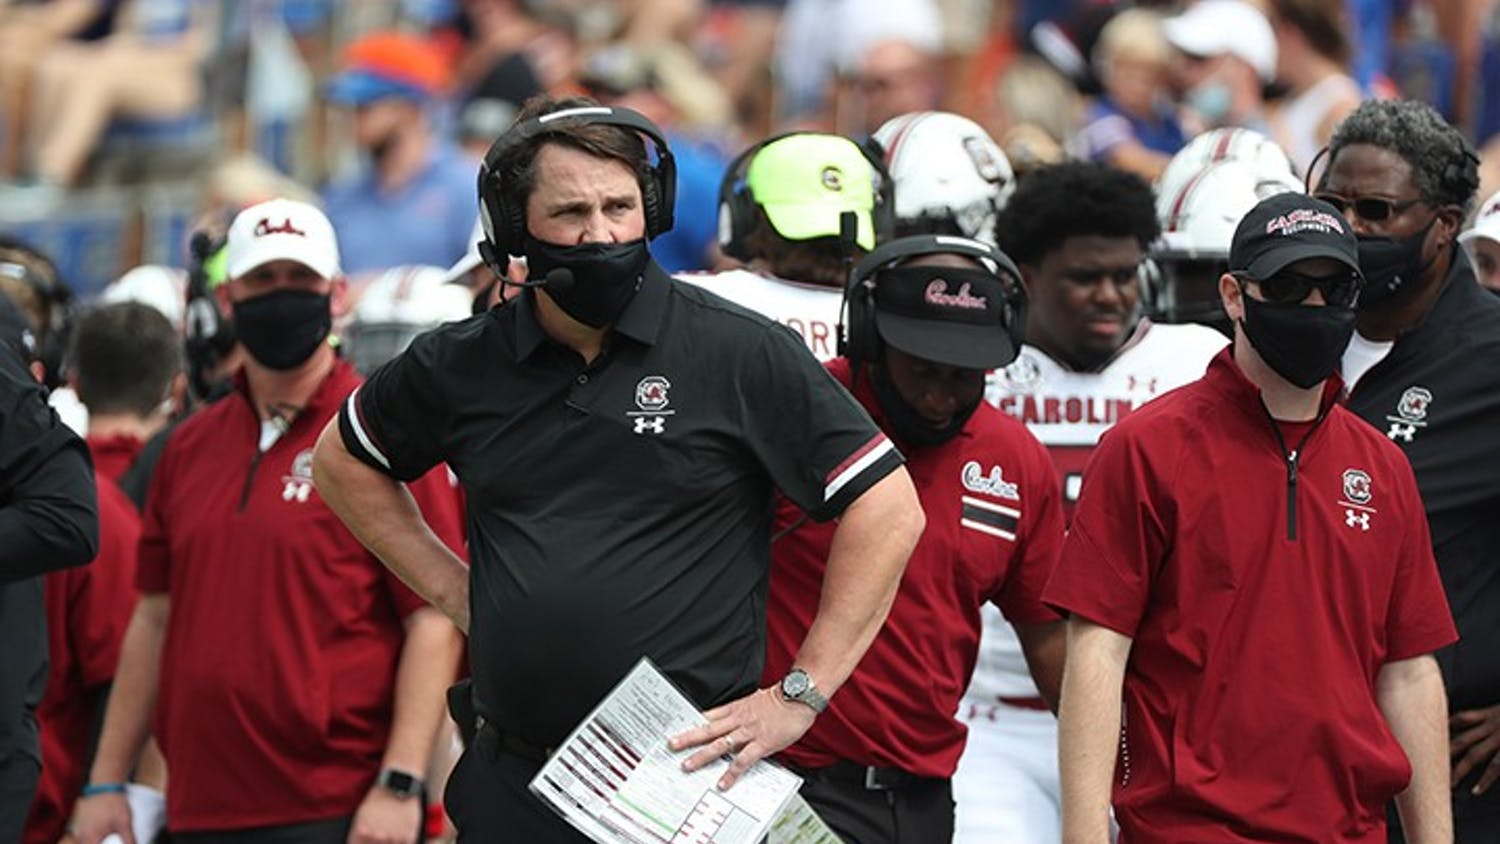 Head coach Will Muschamp stands on the sidelines in the Week 2 game against Florida. The Gamecocks fell to 2-4 with Saturday's loss to Texas A&M.